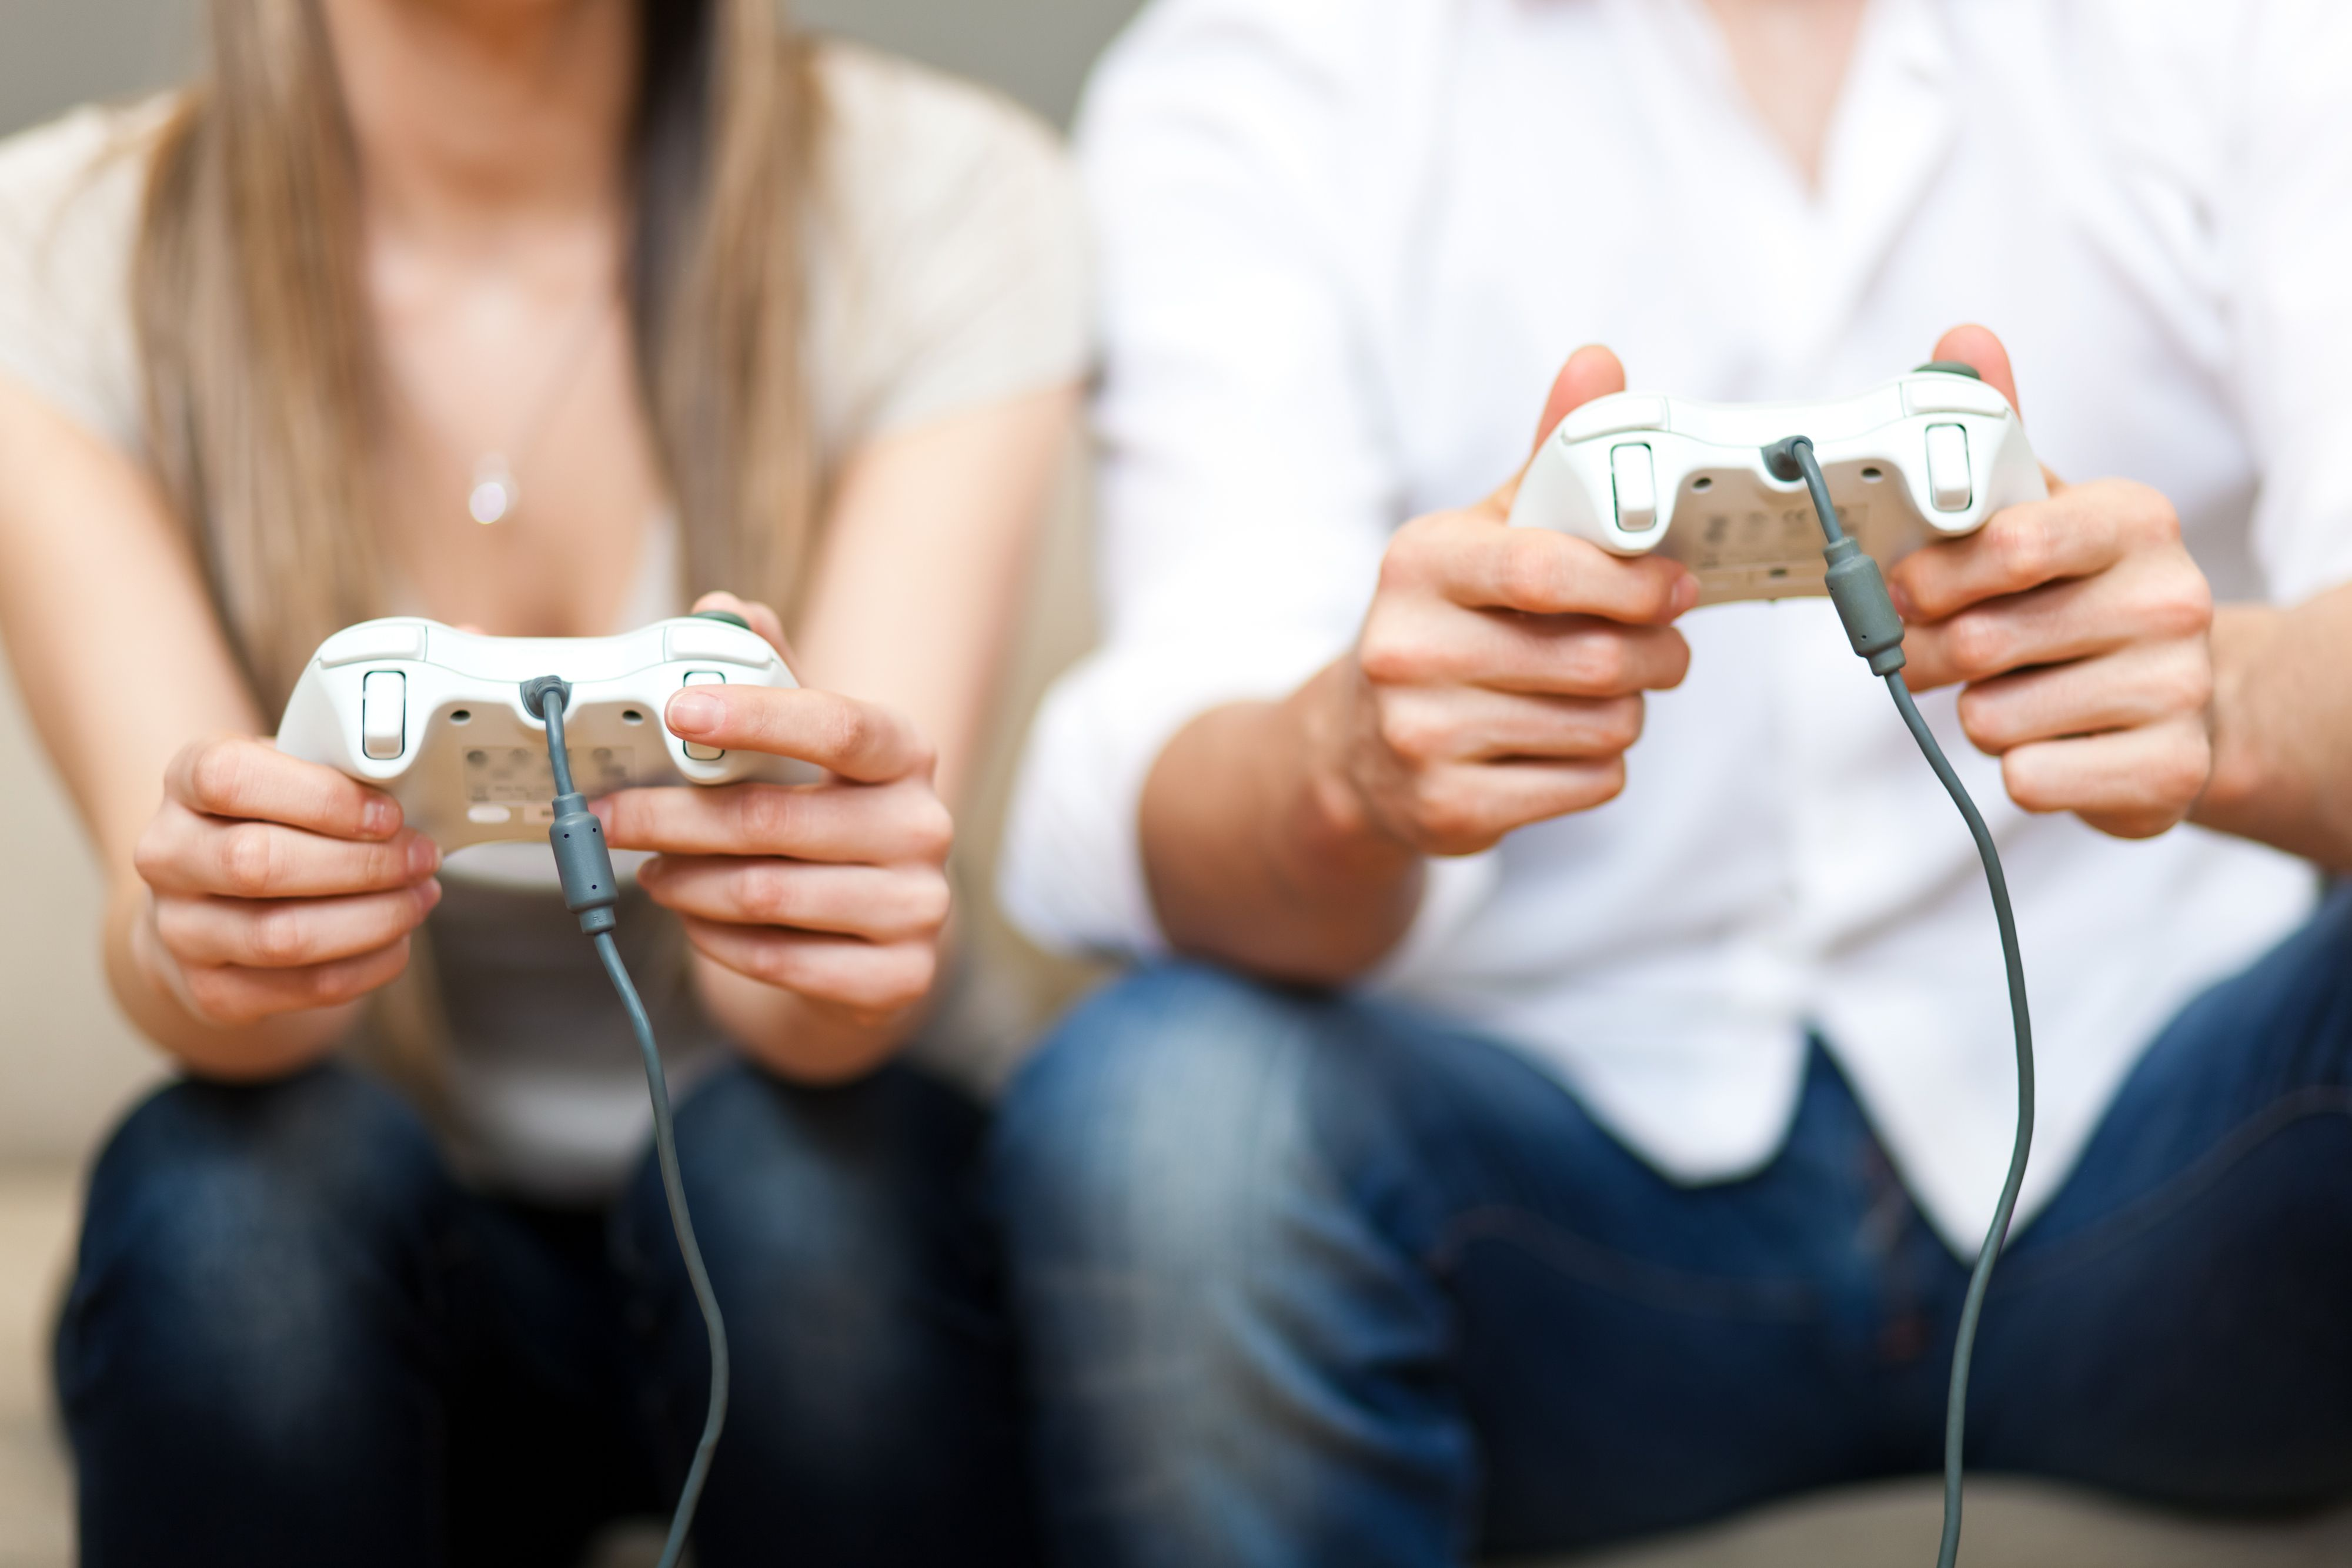 The 10 Best Reasons To Date A Gamer